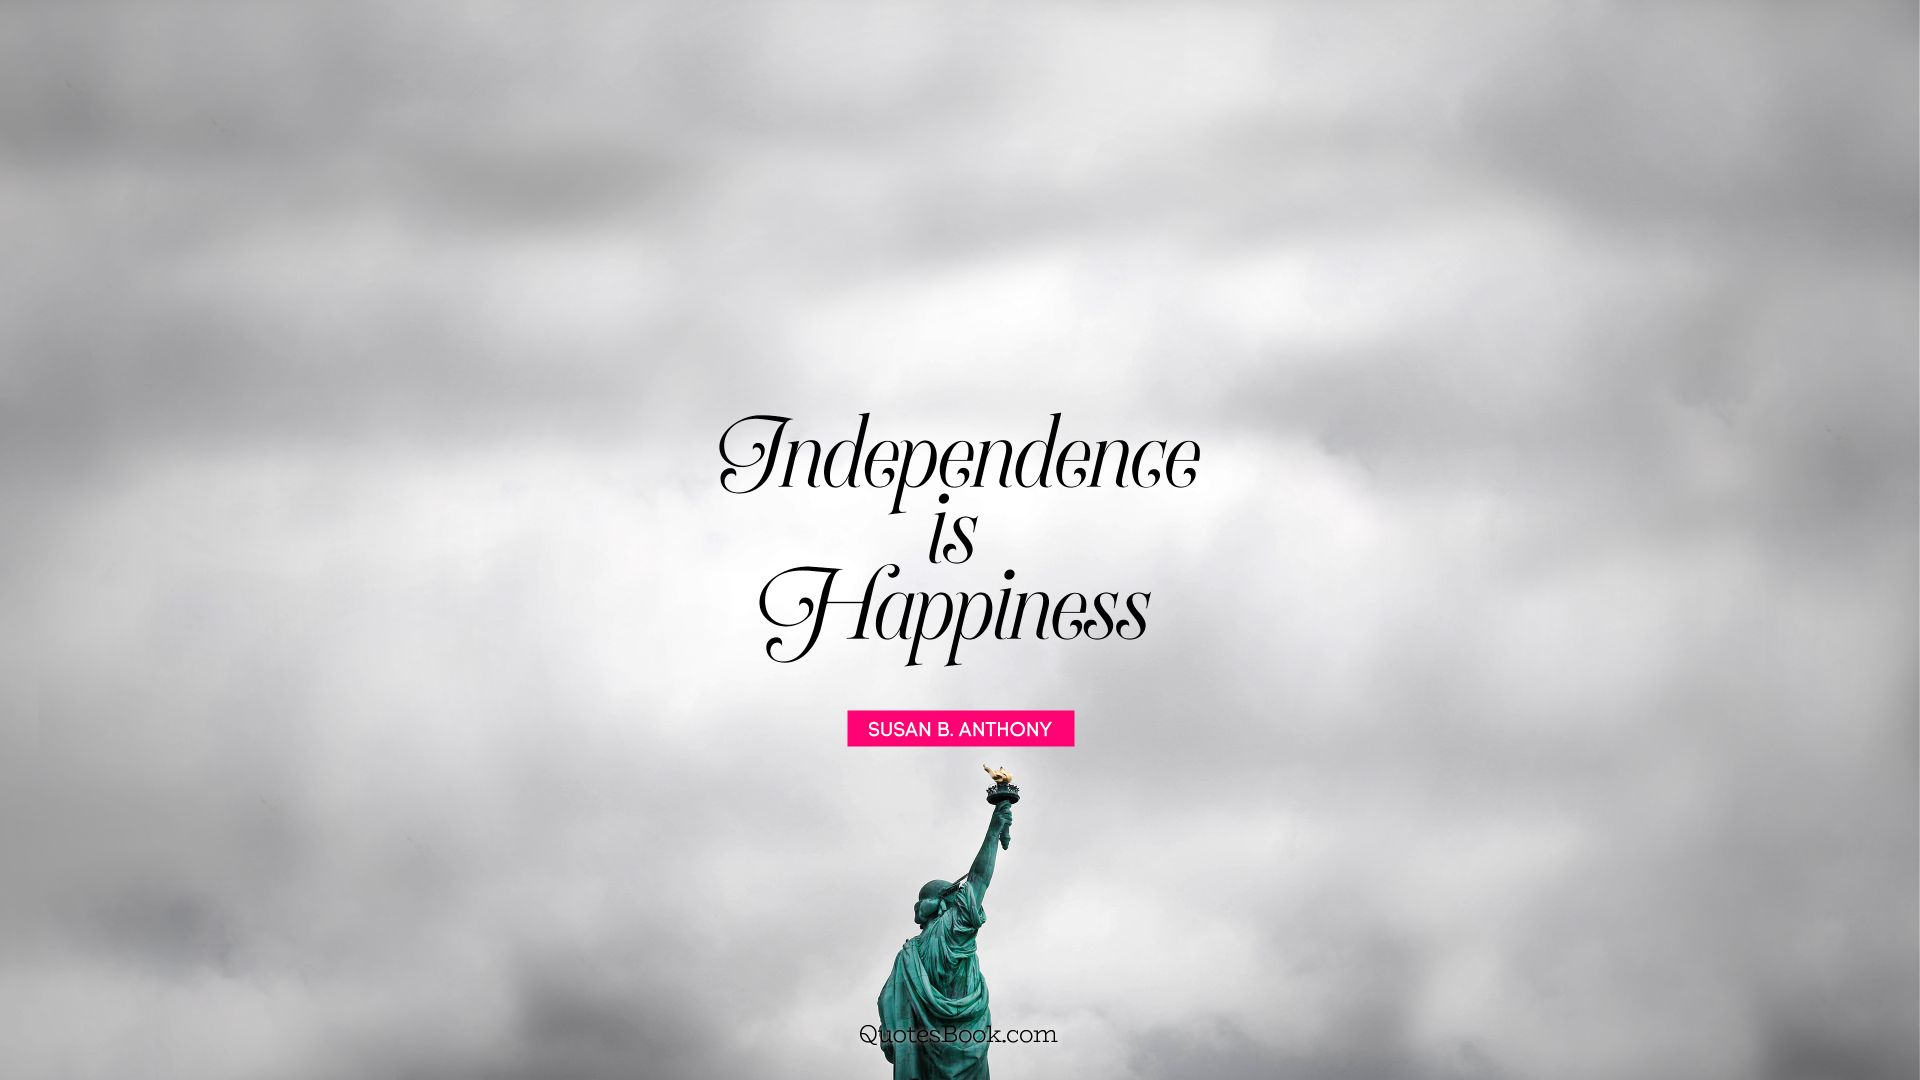 Independence is happiness. - Quote by Susan B. Anthony